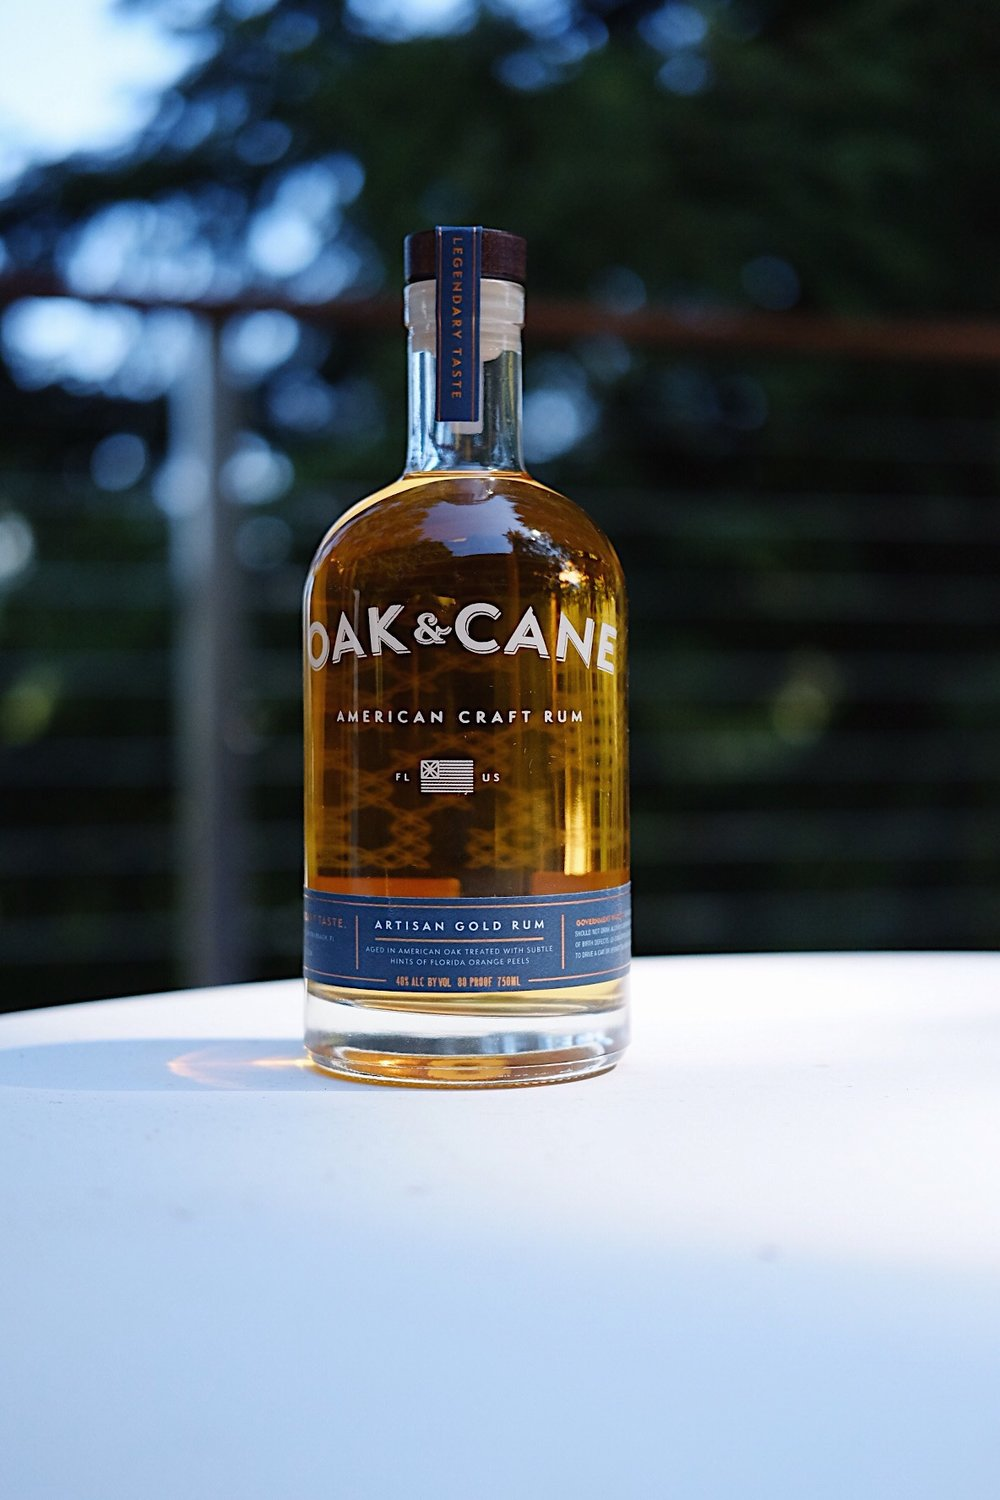 Oak & cane Rum - AGE: no age statementCOST: $40-$50ABV: 40DEFINING FLAVORS: Fruity & Sweet